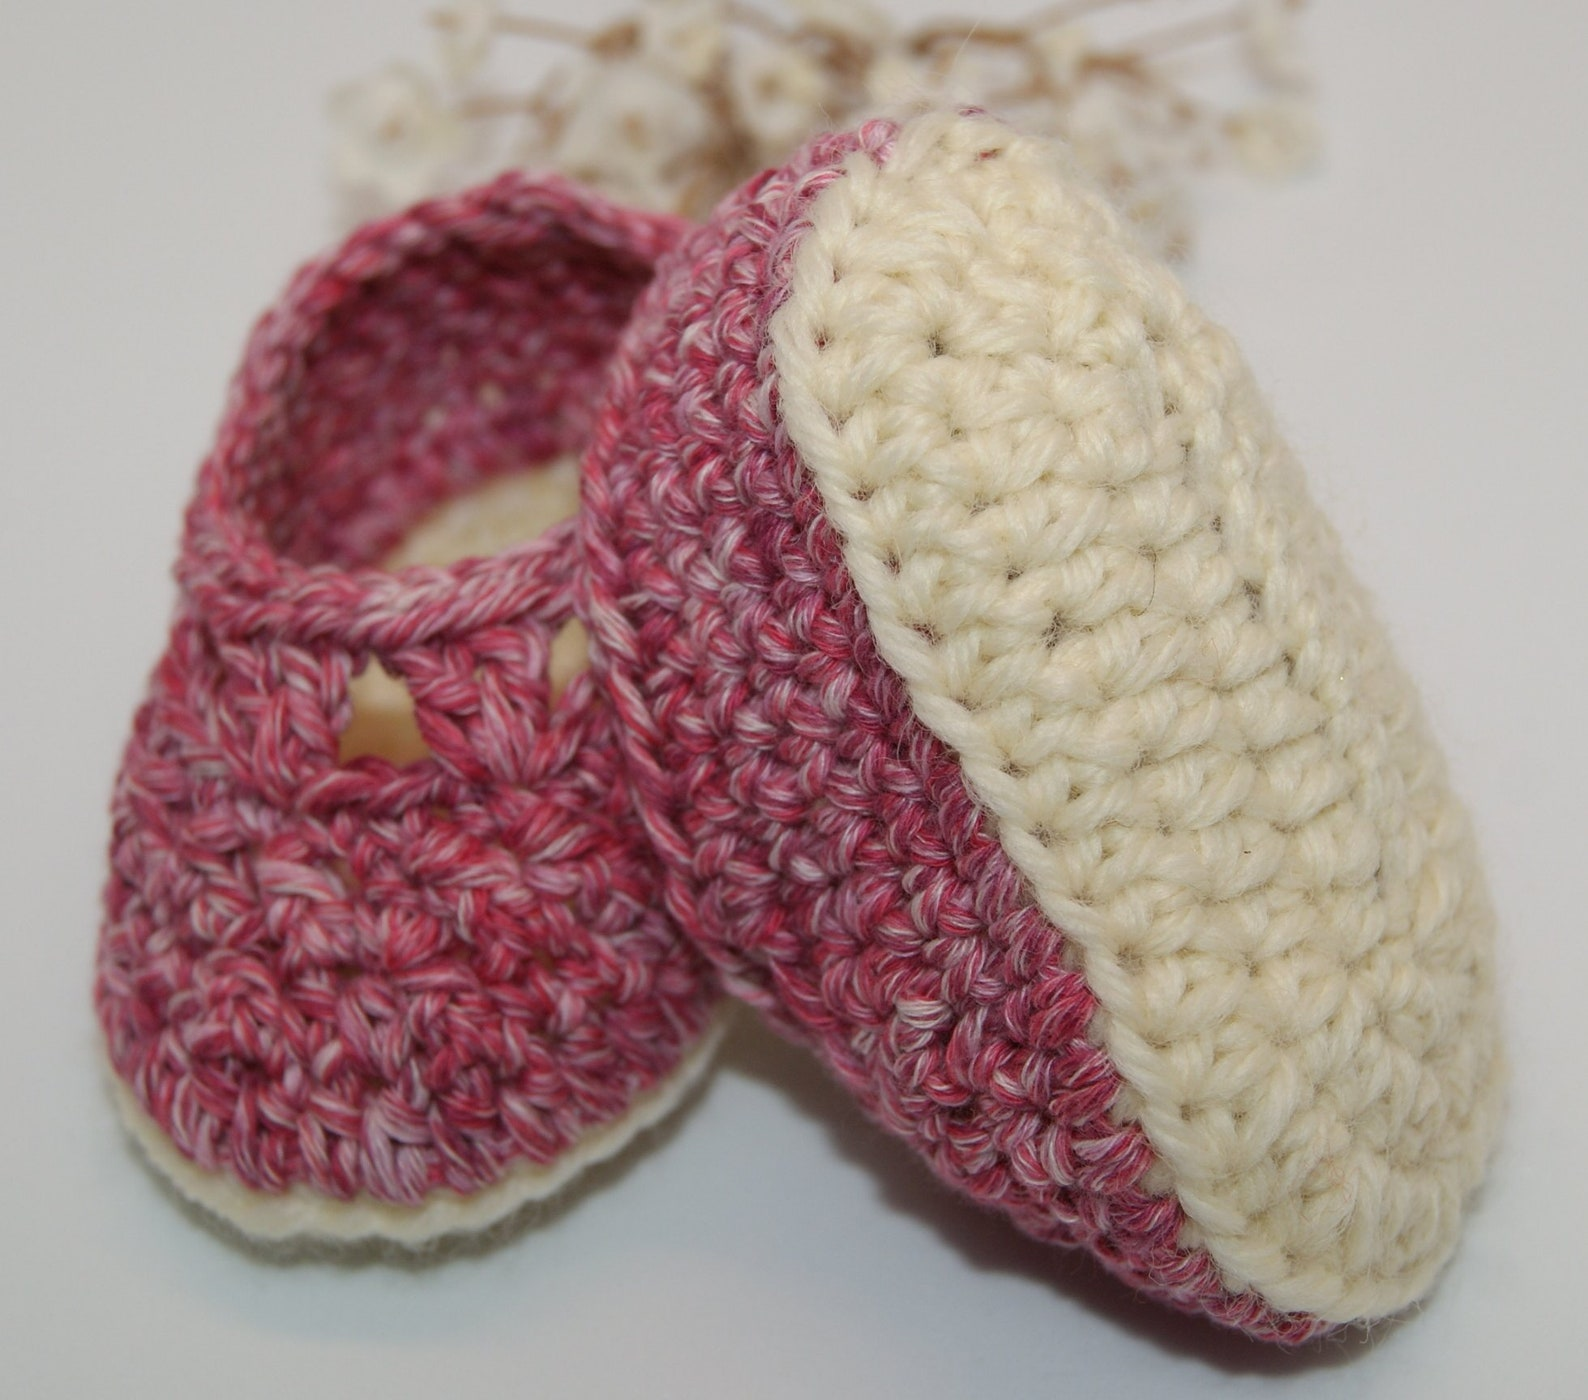 baby girl booties slip on style infant shoes newborn baby girl ballet shoes size 0 to 3 months baby shower gift item two toned b